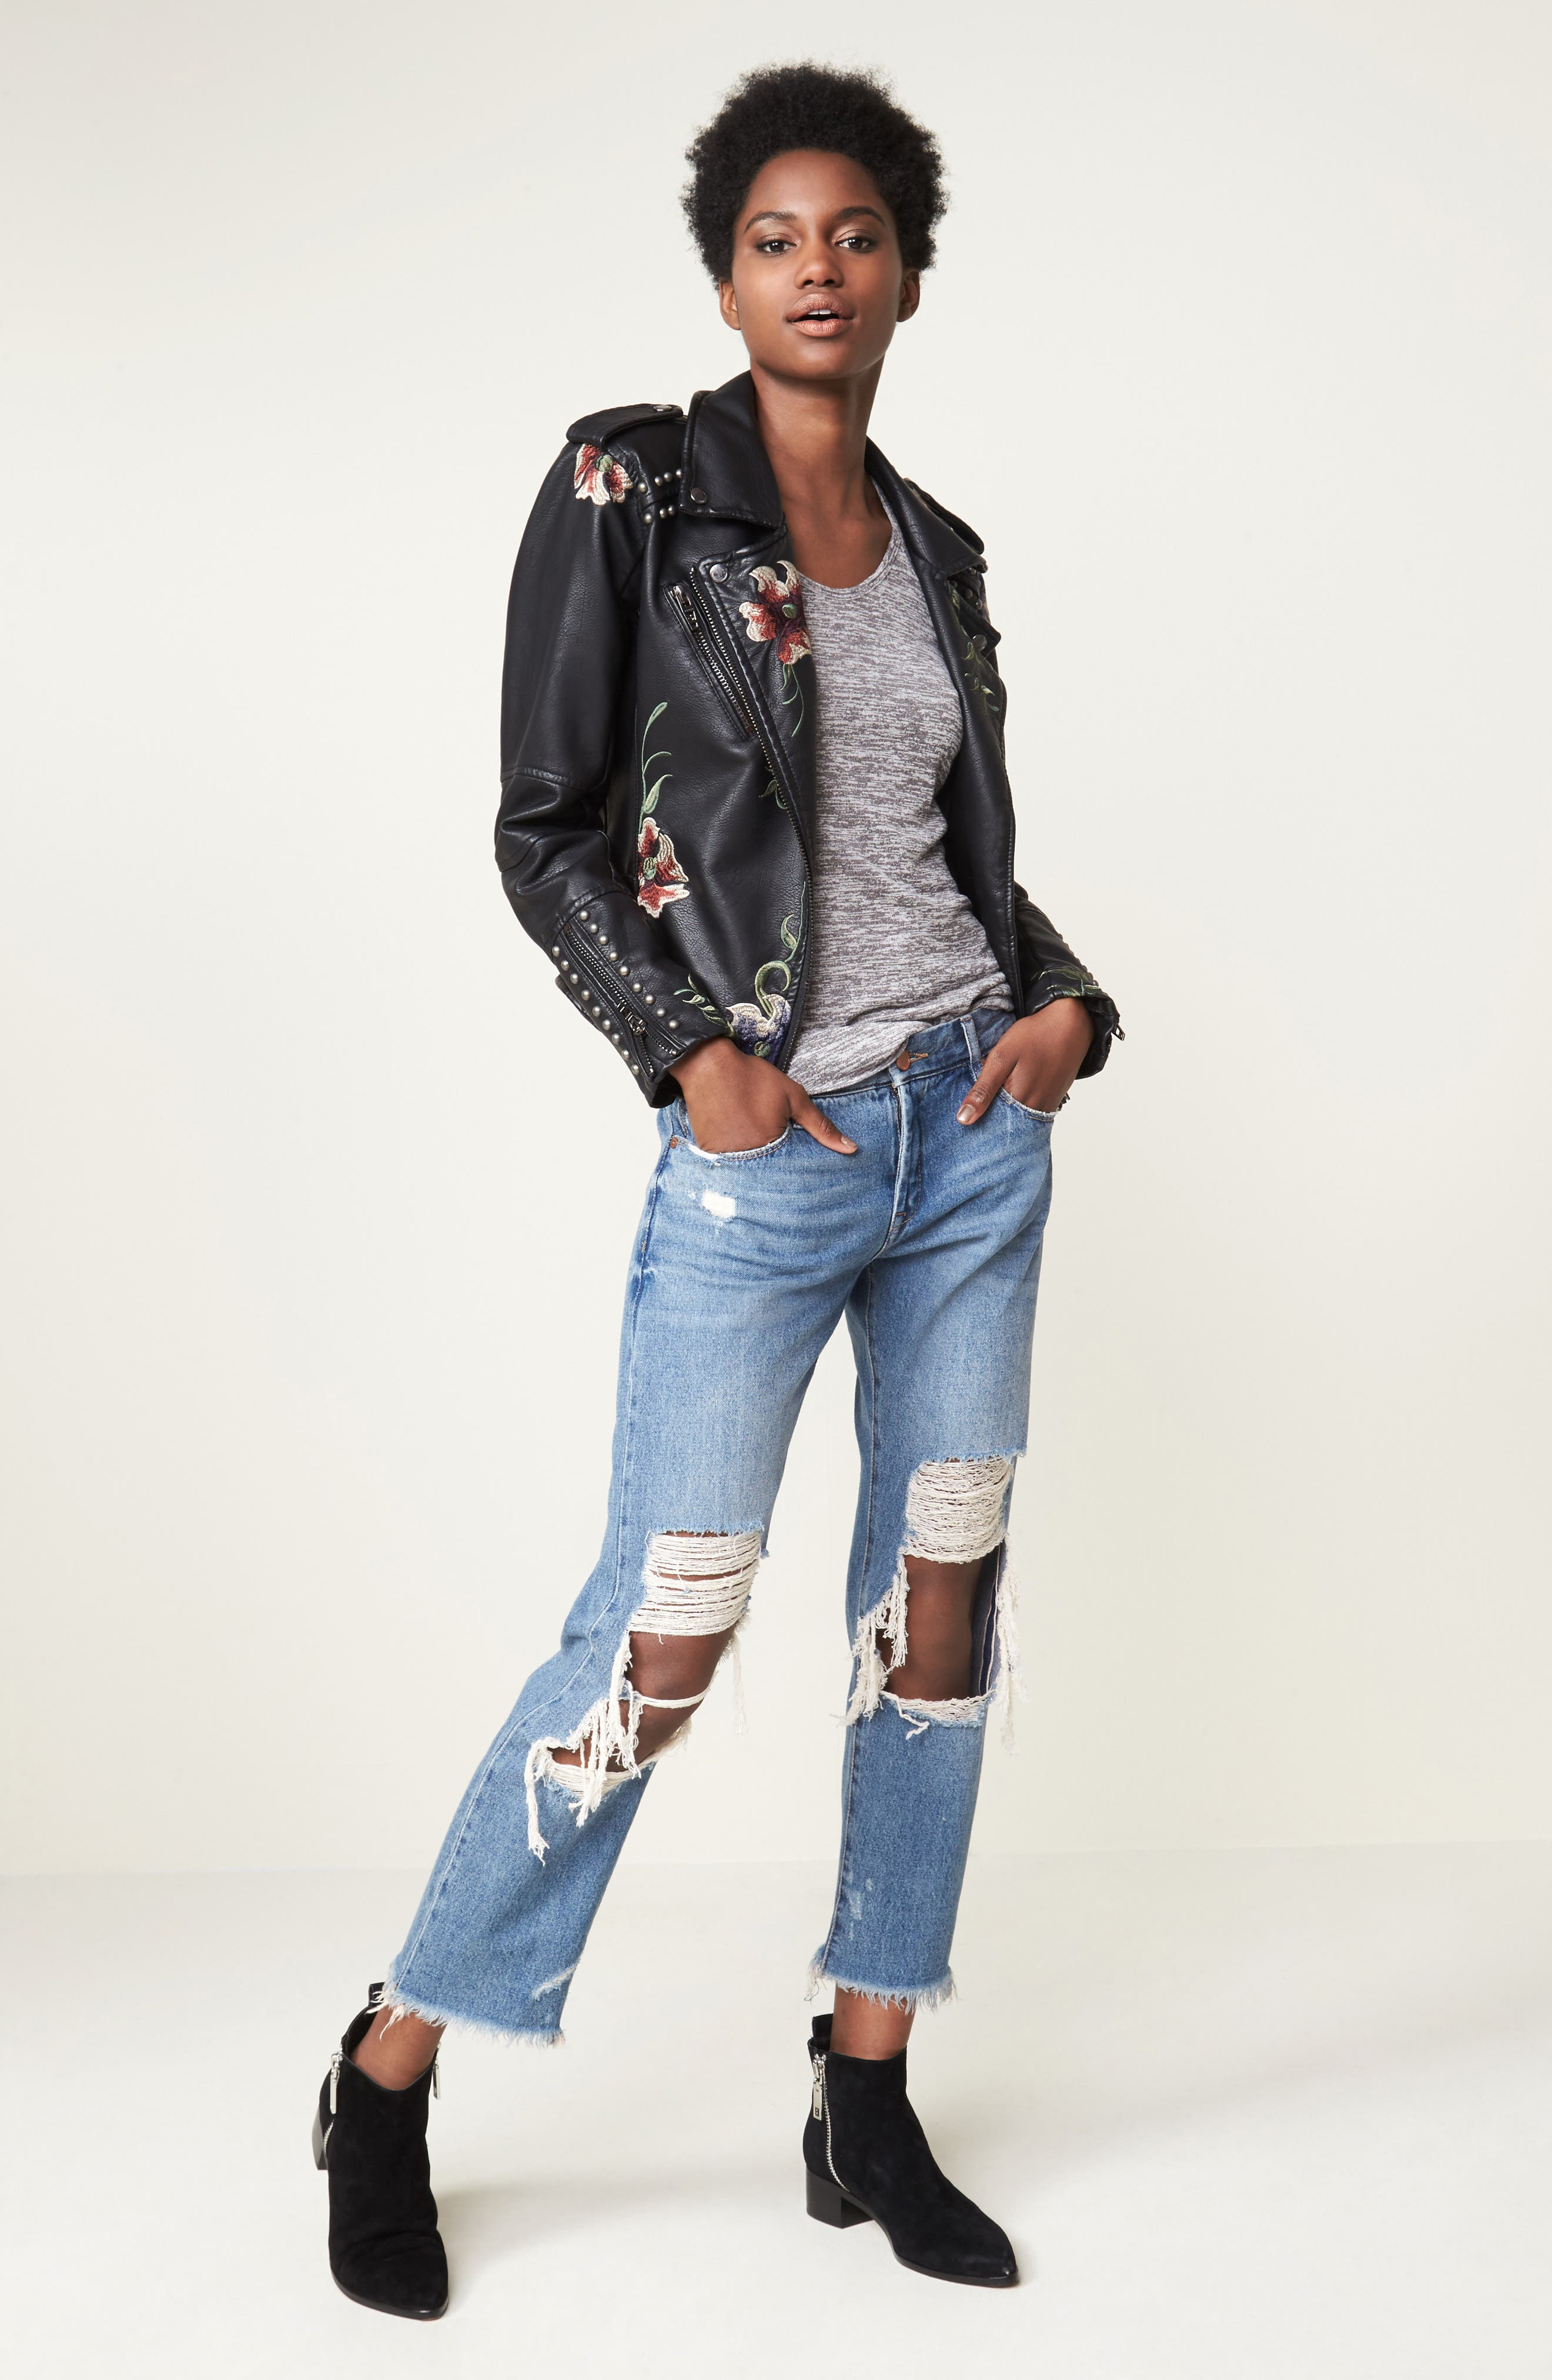 Leith Camisole, BLANKNYC Jacket & Jeans Outfit with Accessories